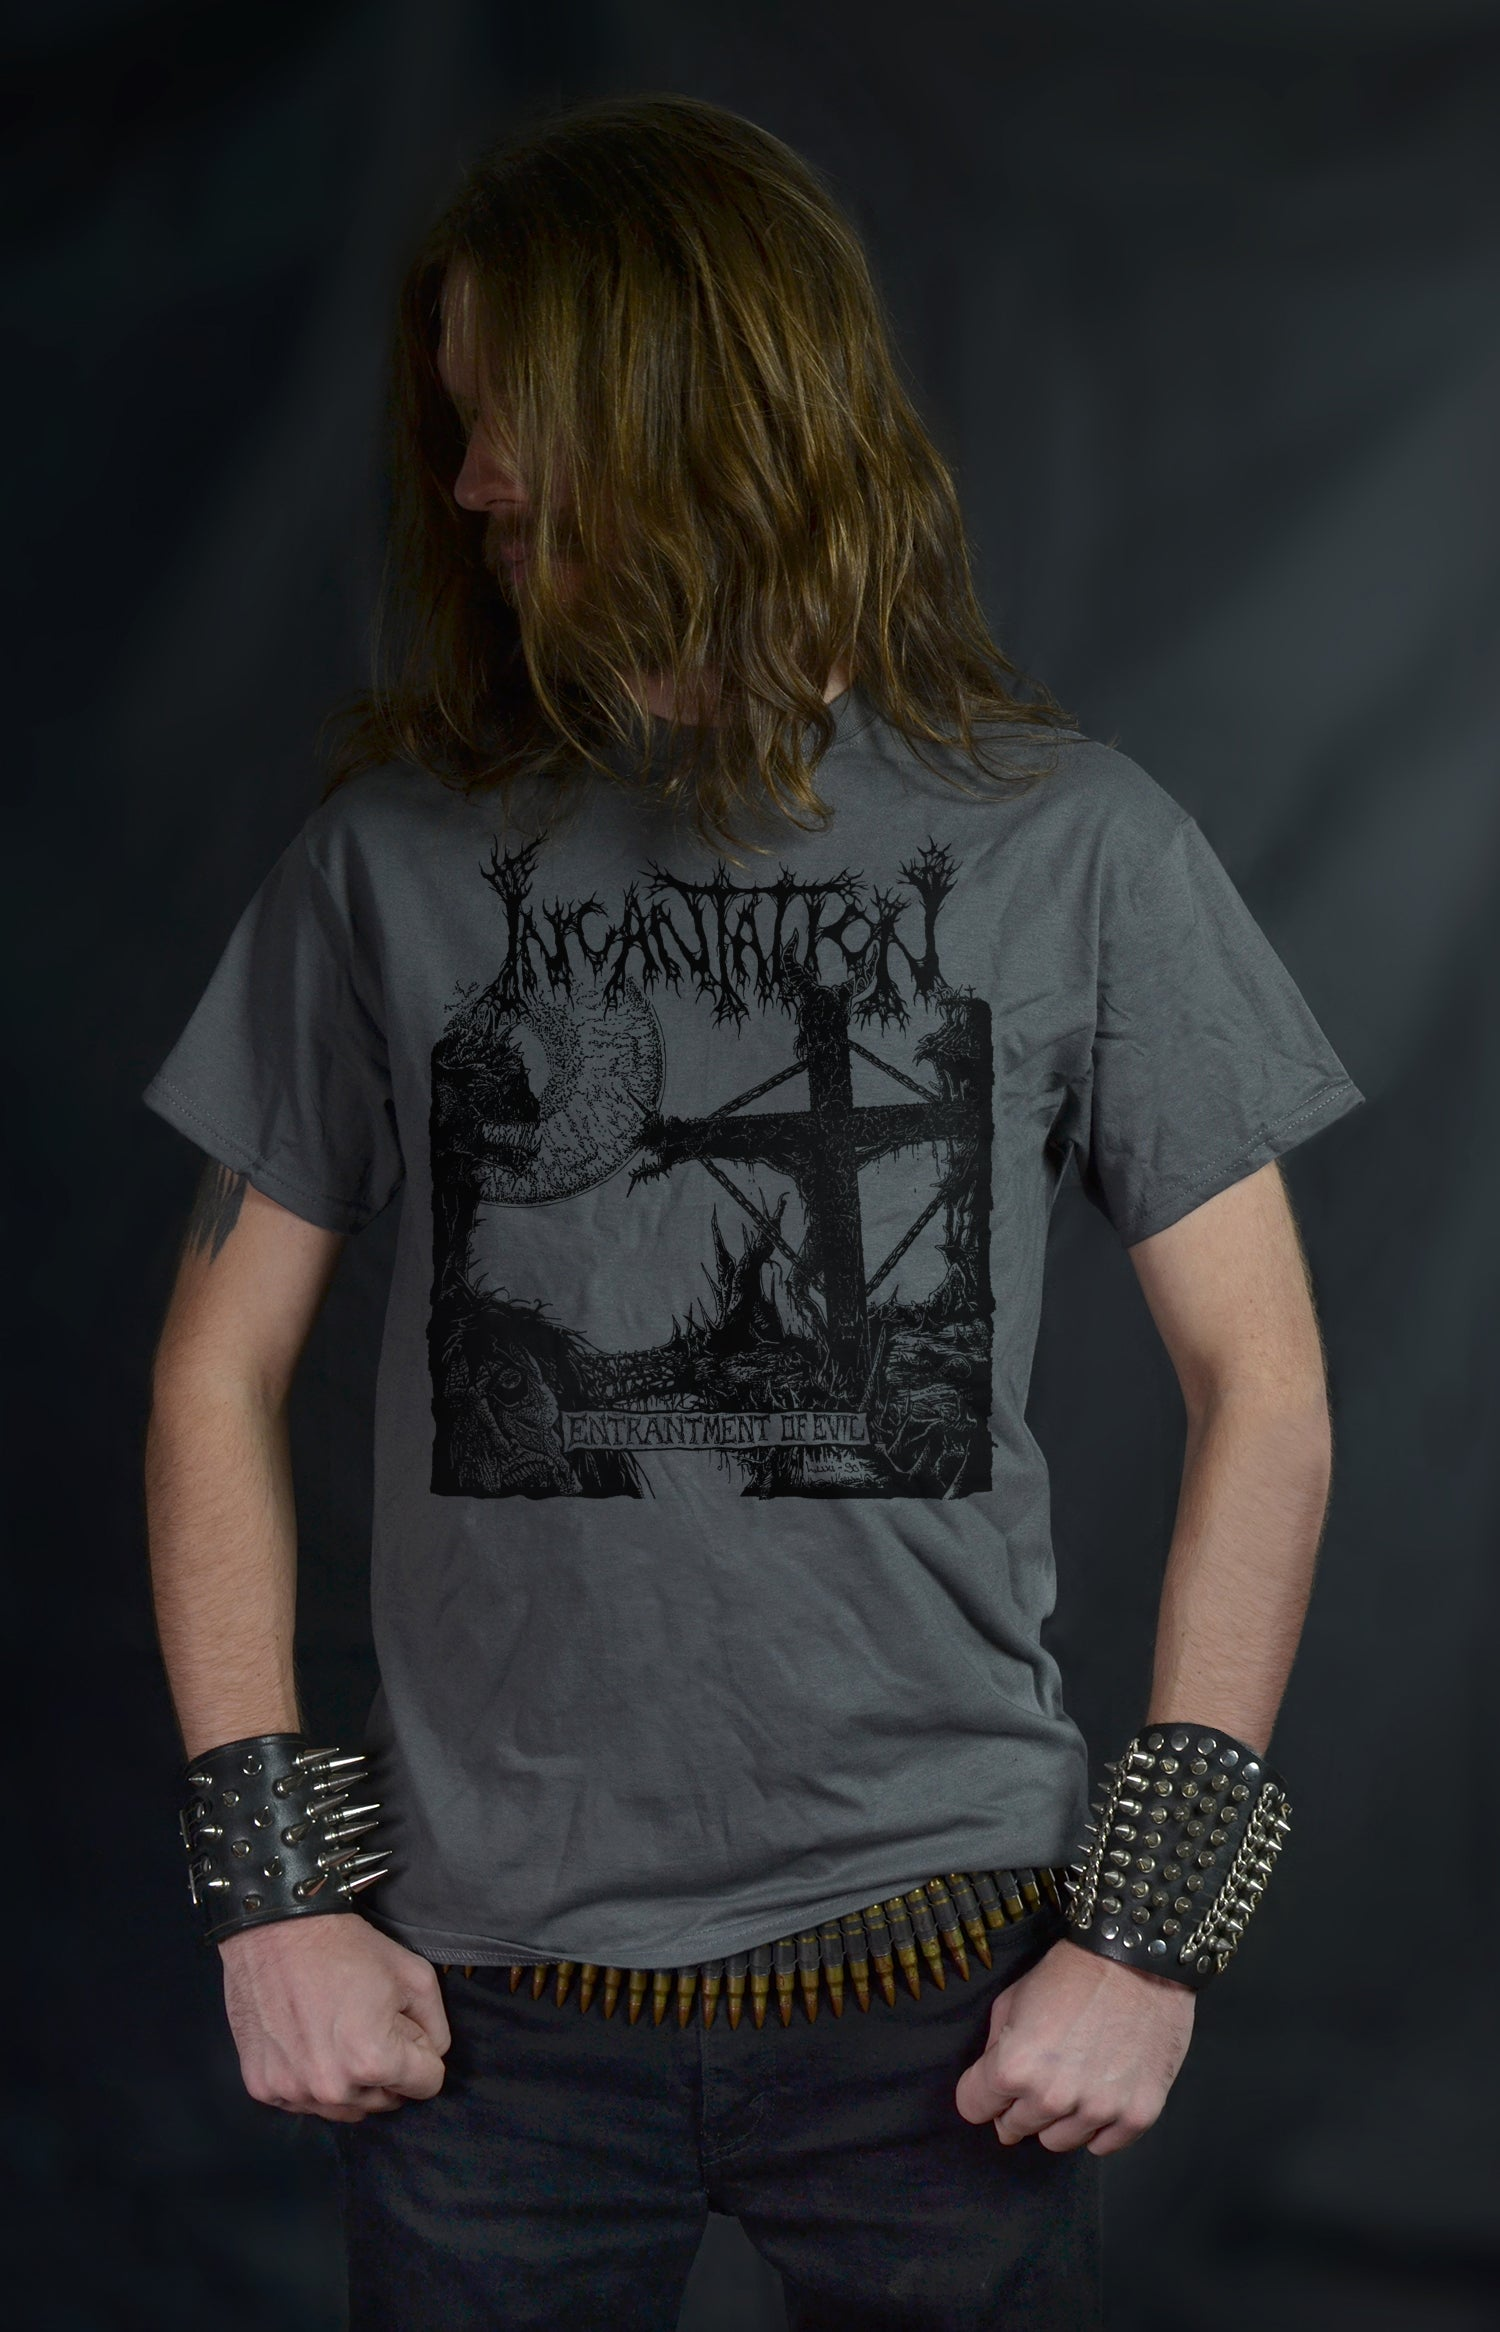 INCANTATION - Entrantment of Evil (Luxi Artwork) (CHARCOAL T-Shirt)